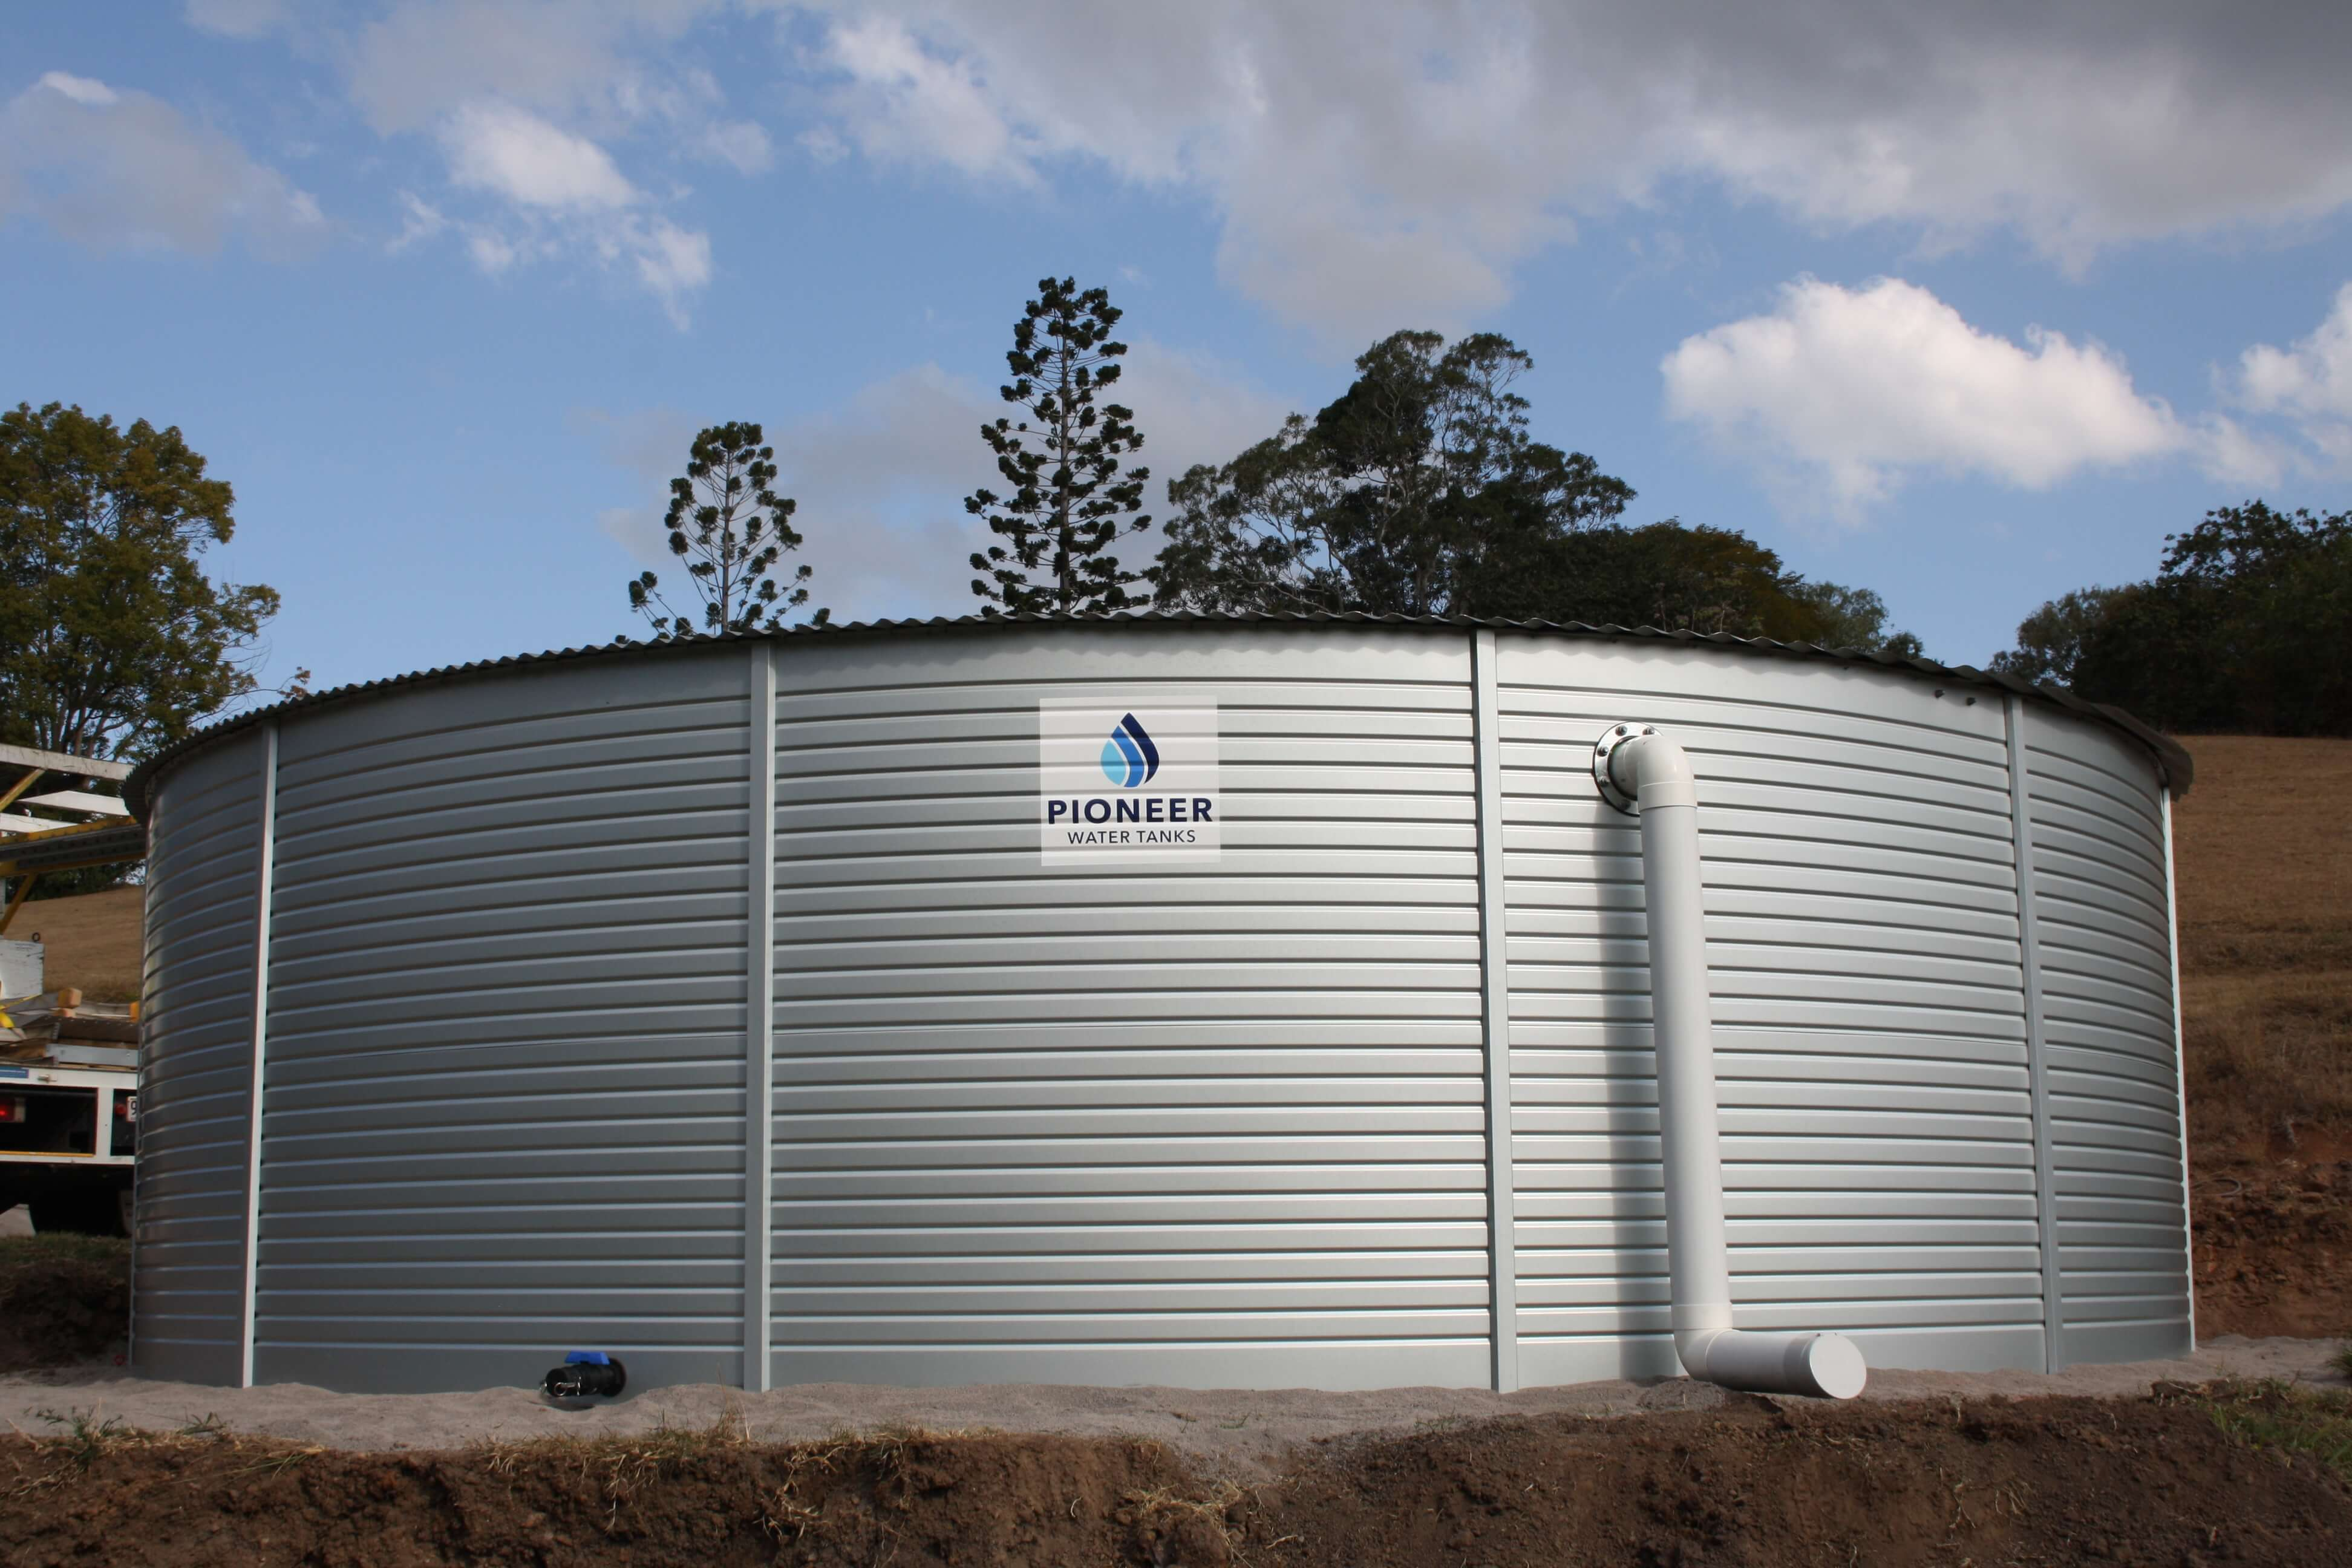 The best 'cents per litre' Water infrastructure investment